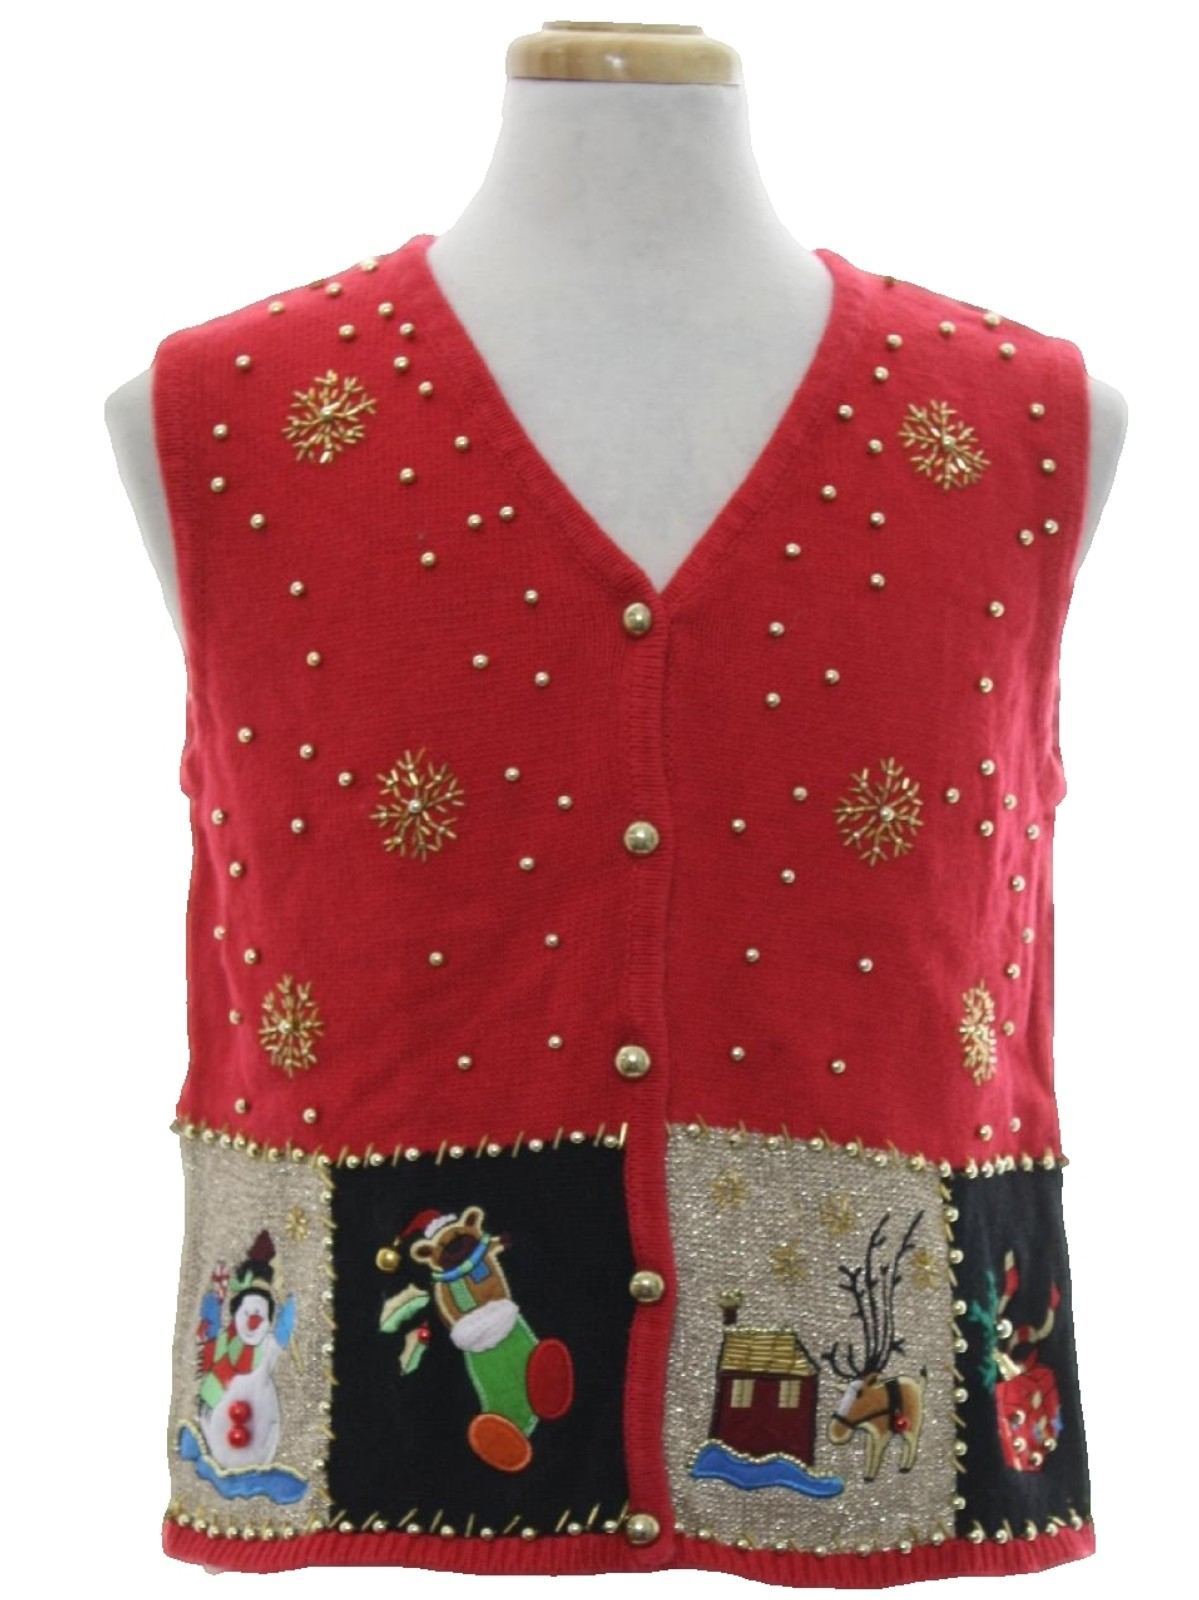 Womens Ugly Christmas Sweater Vest: -Lisa- Womens red, black and ...